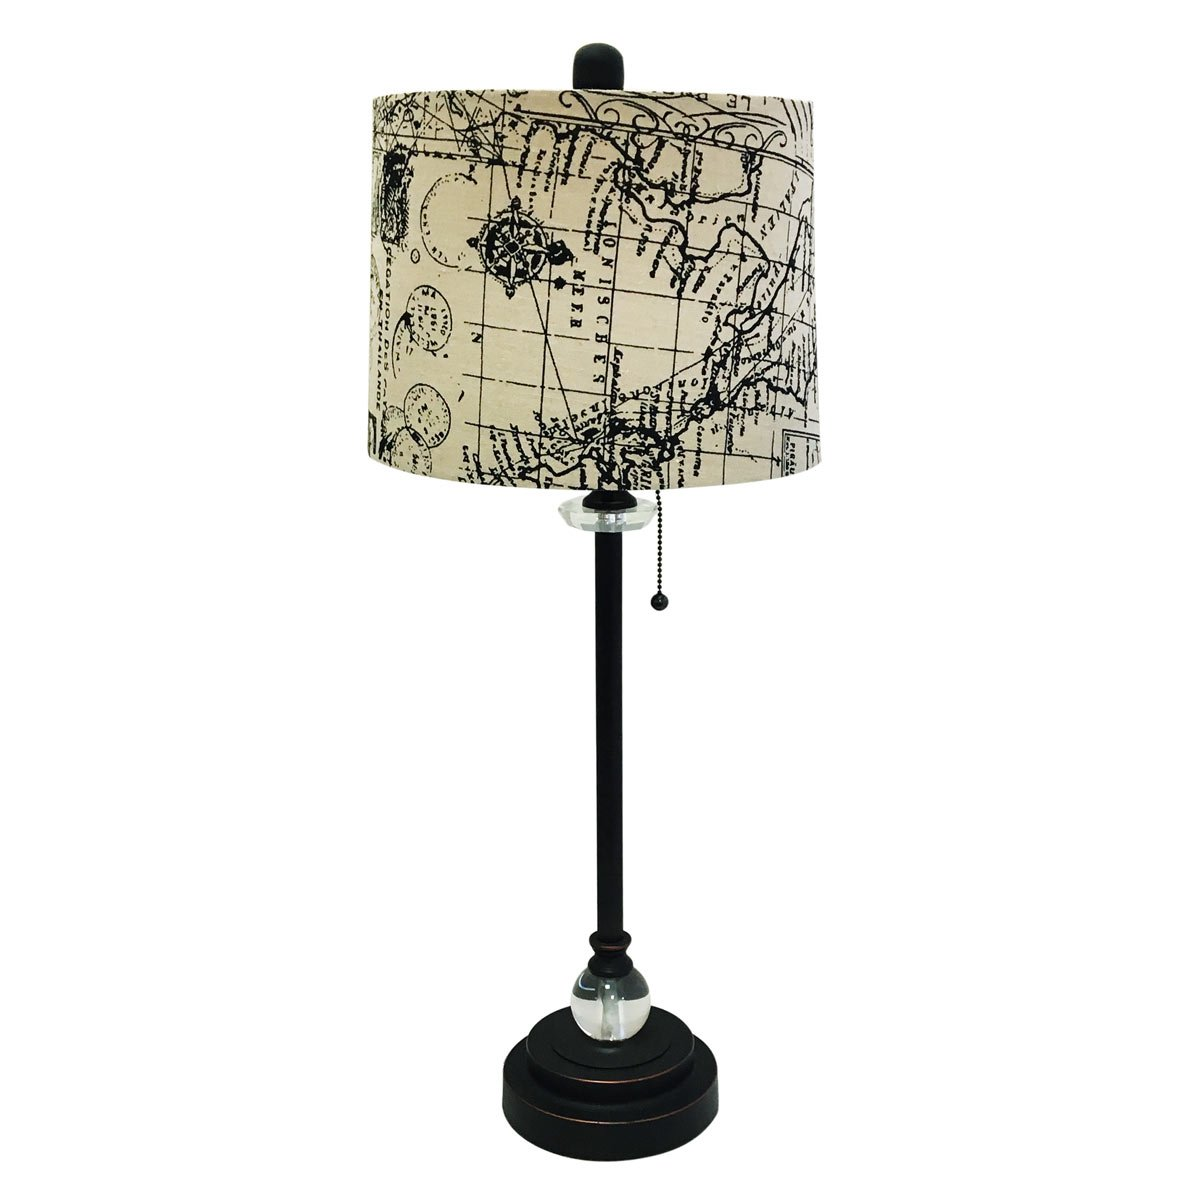 Royal Designs 28'' Crystal and Oil Rub Bronze Lamp with Vintage Map Postcard Design Drum Hardback Lamp Shade